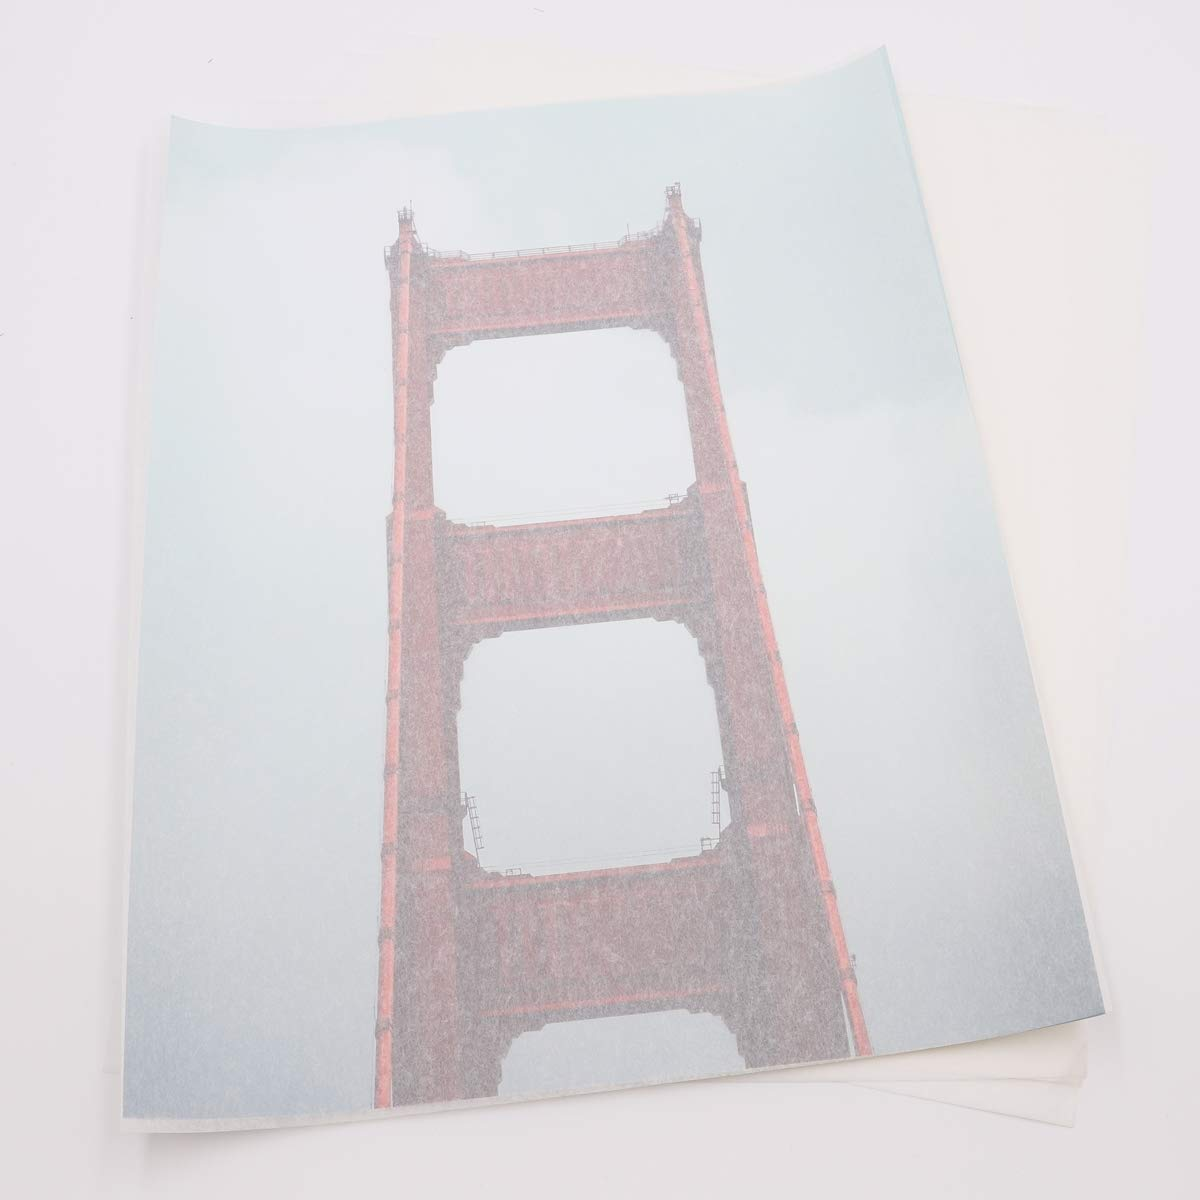 Pack of 100 Document Size 11x14 Tissue to Separate Prints Artwork Lithographs Drawings Lineco Unbuffered Acid-Free Interleaving Tissue Paper Protects Artifacts and More. Paper